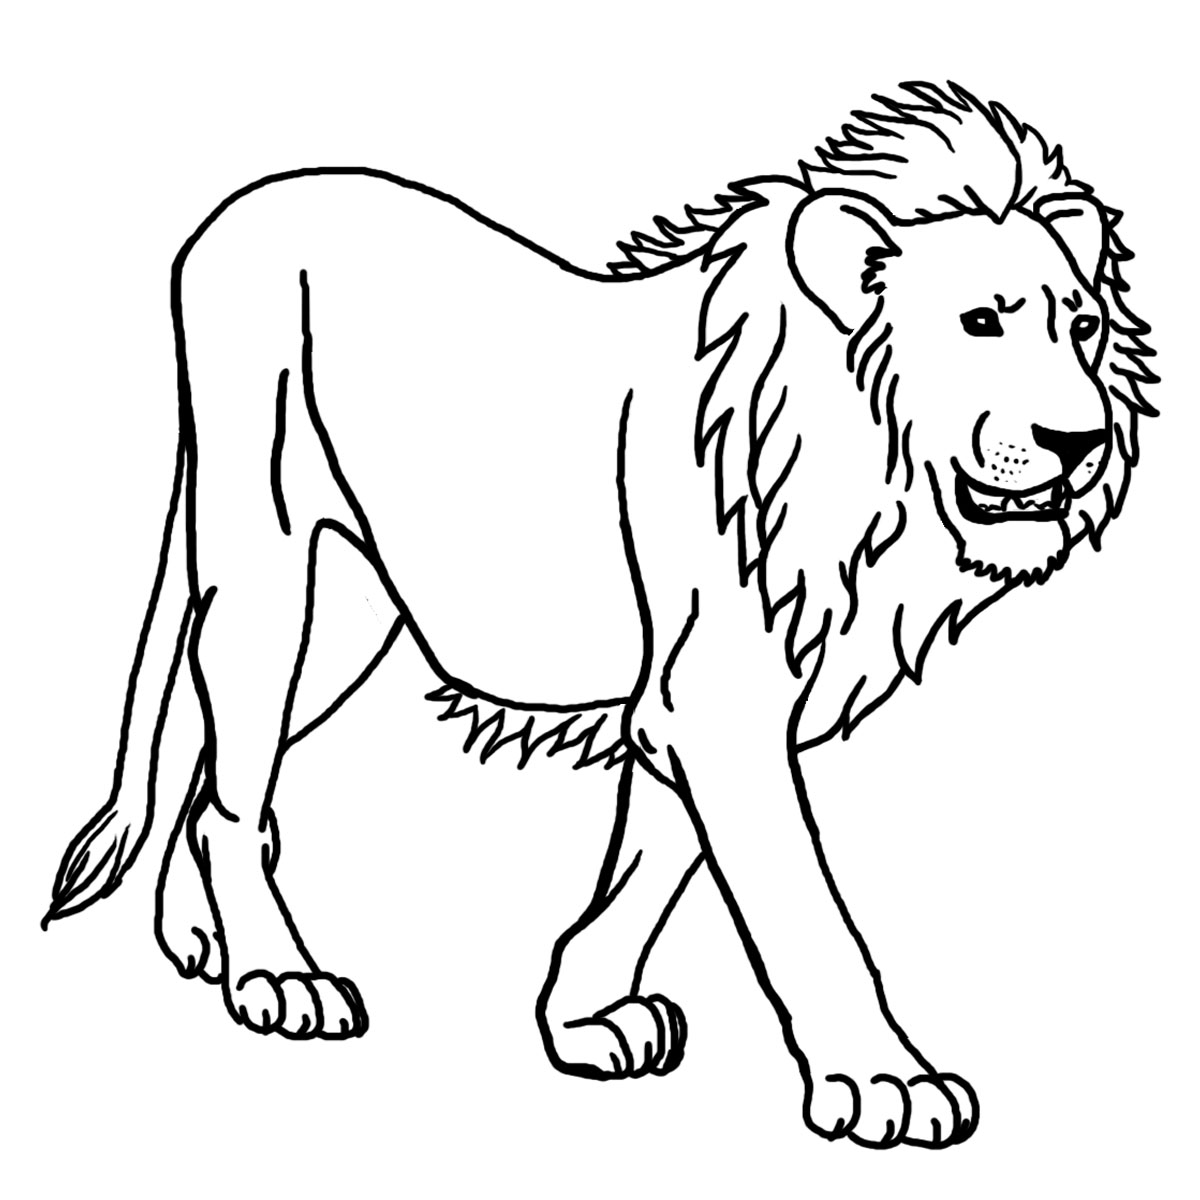 Black and white lion clip art - photo#20